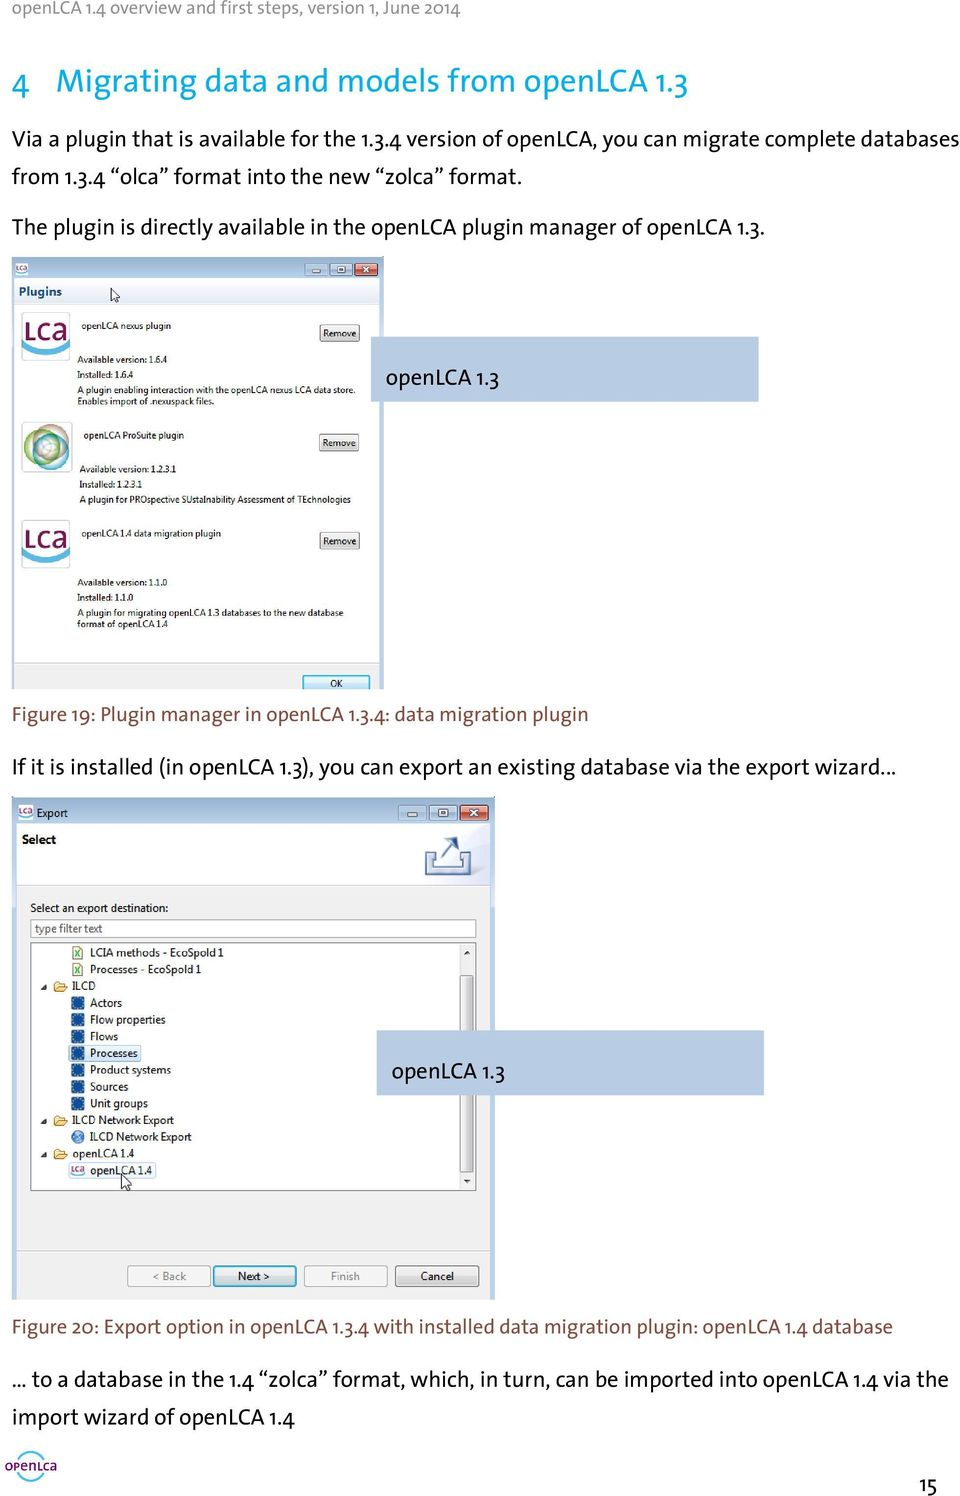 3), you can export an existing database via the export wizard... openlca 1.3 Figure 20: Export option in openlca 1.3.4 with installed data migration plugin: openlca 1.